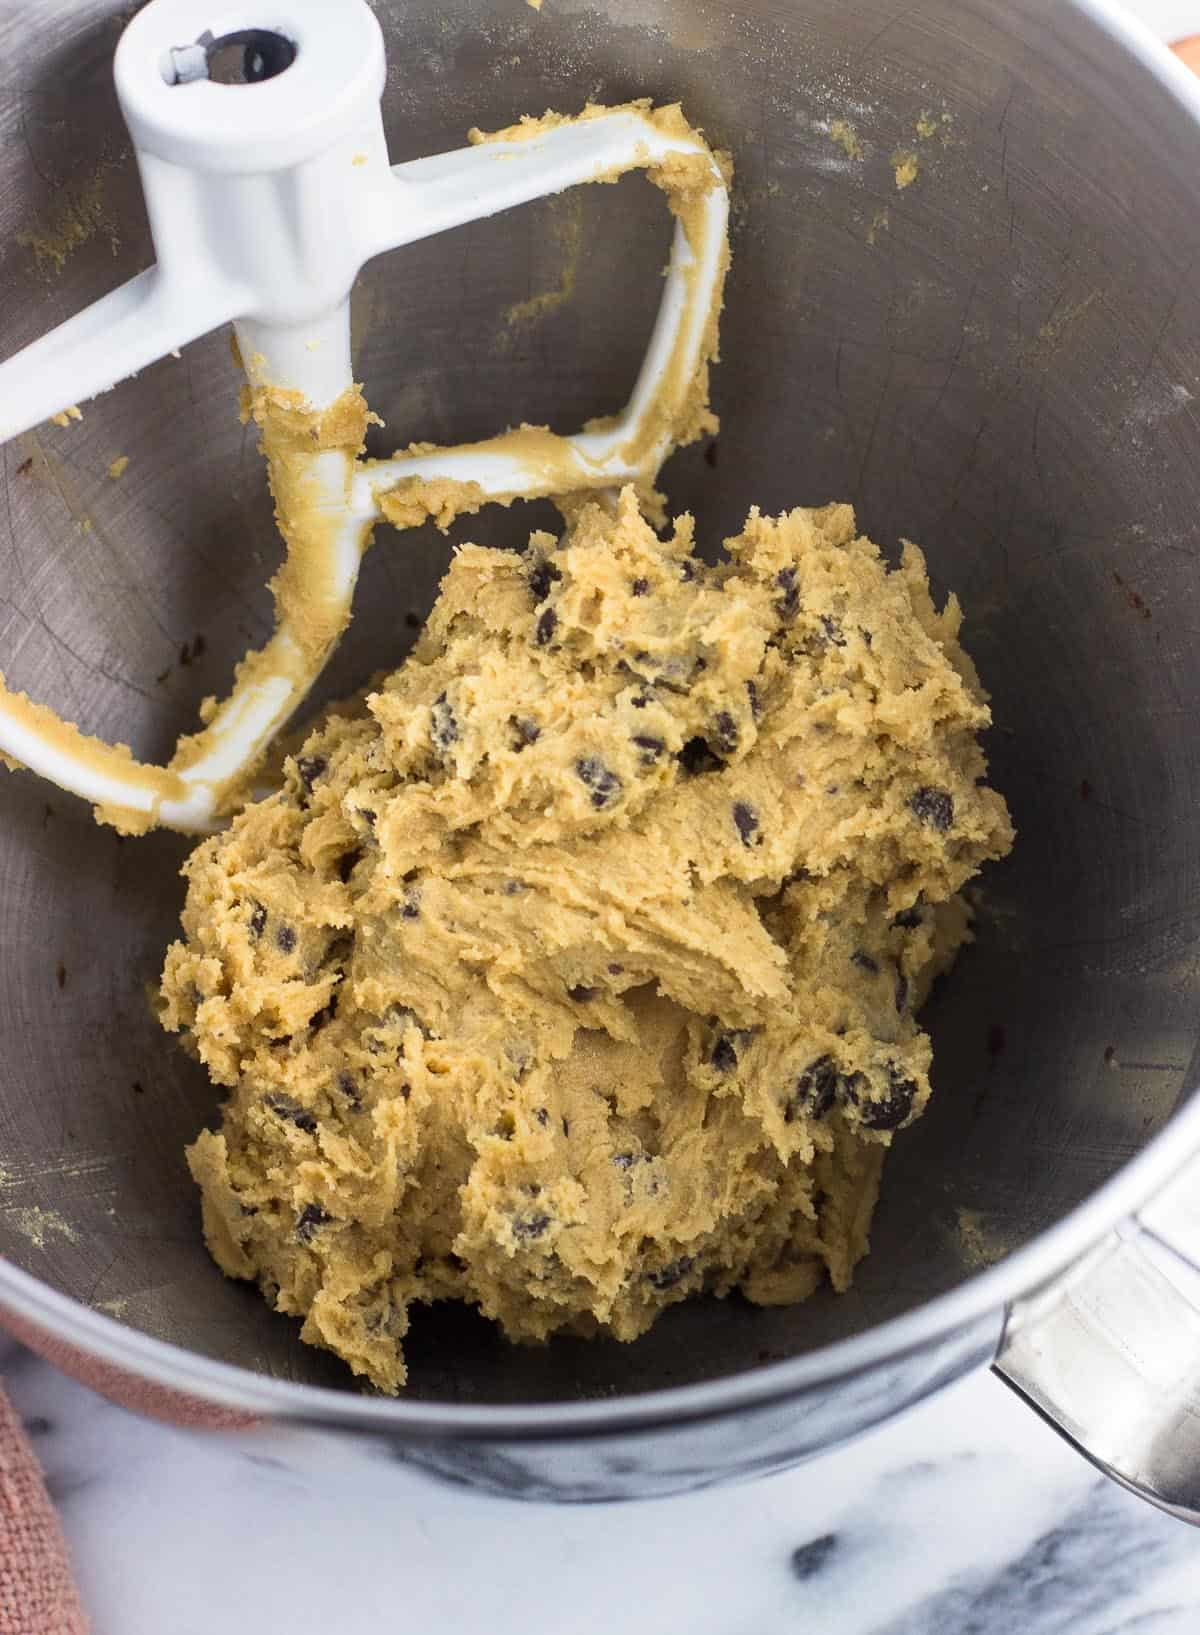 Chocolate chip cookie dough in a metal mixing bowl next to the stand mixer paddle attachment